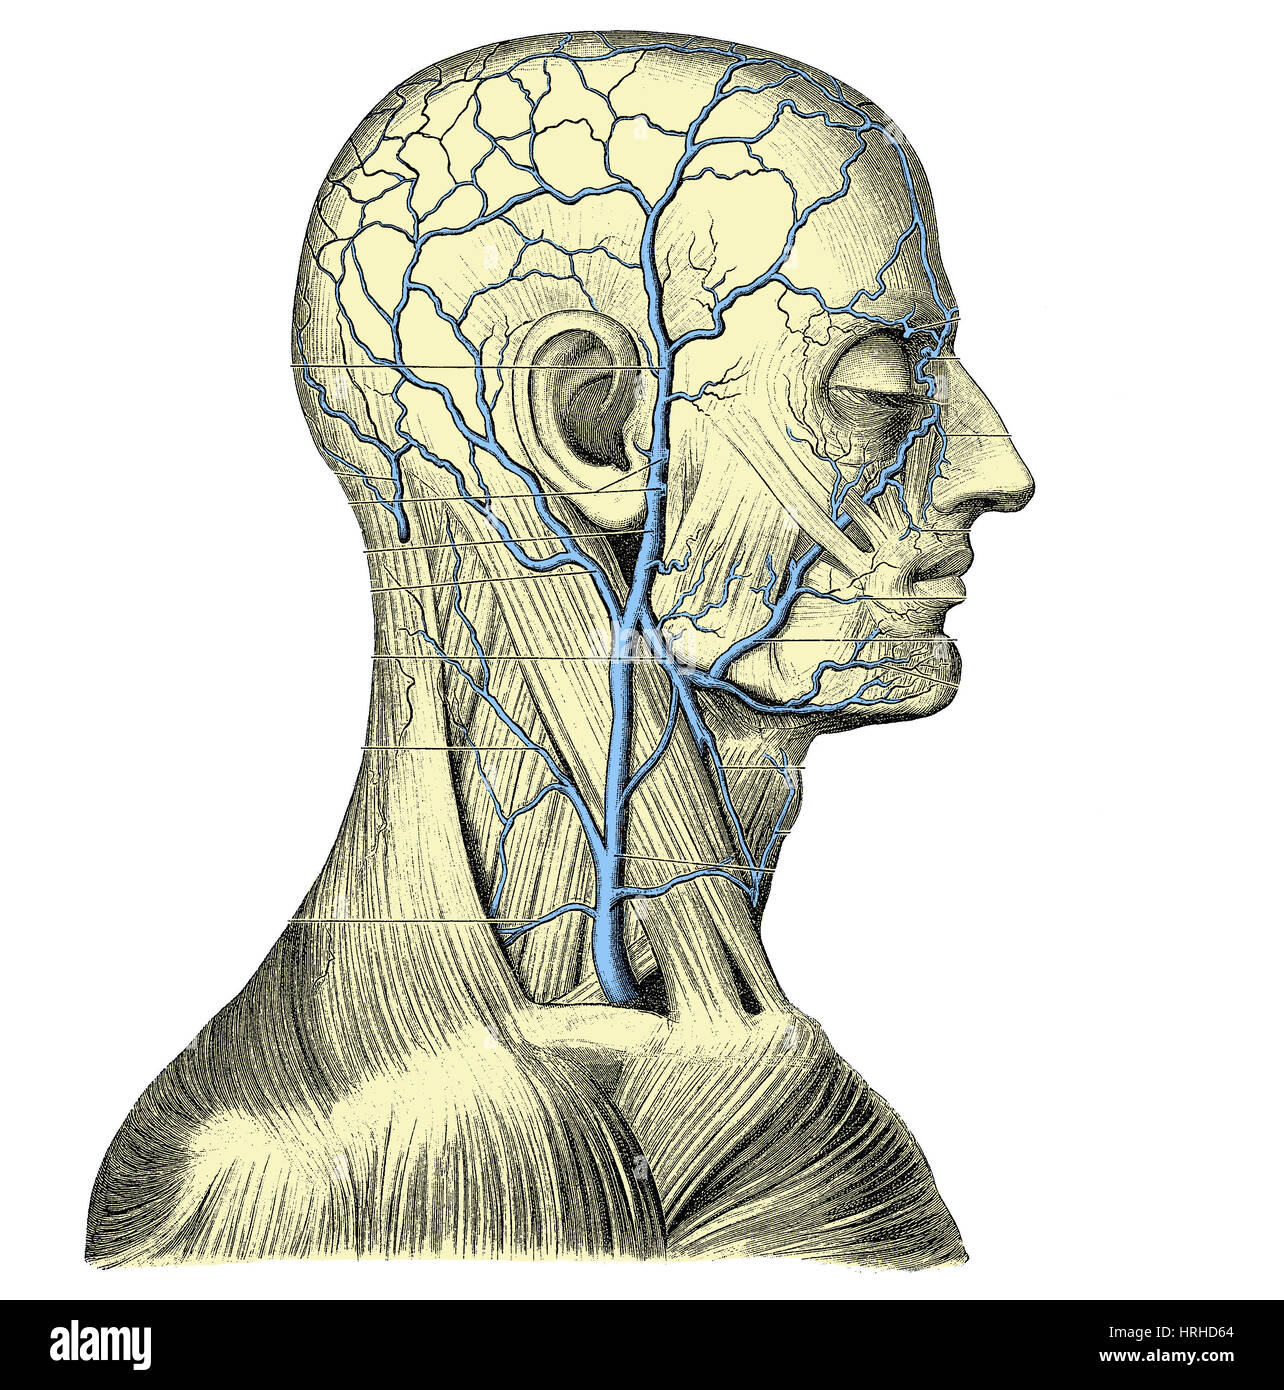 Veins of the Head and Neck Stock Photo: 134993212 - Alamy